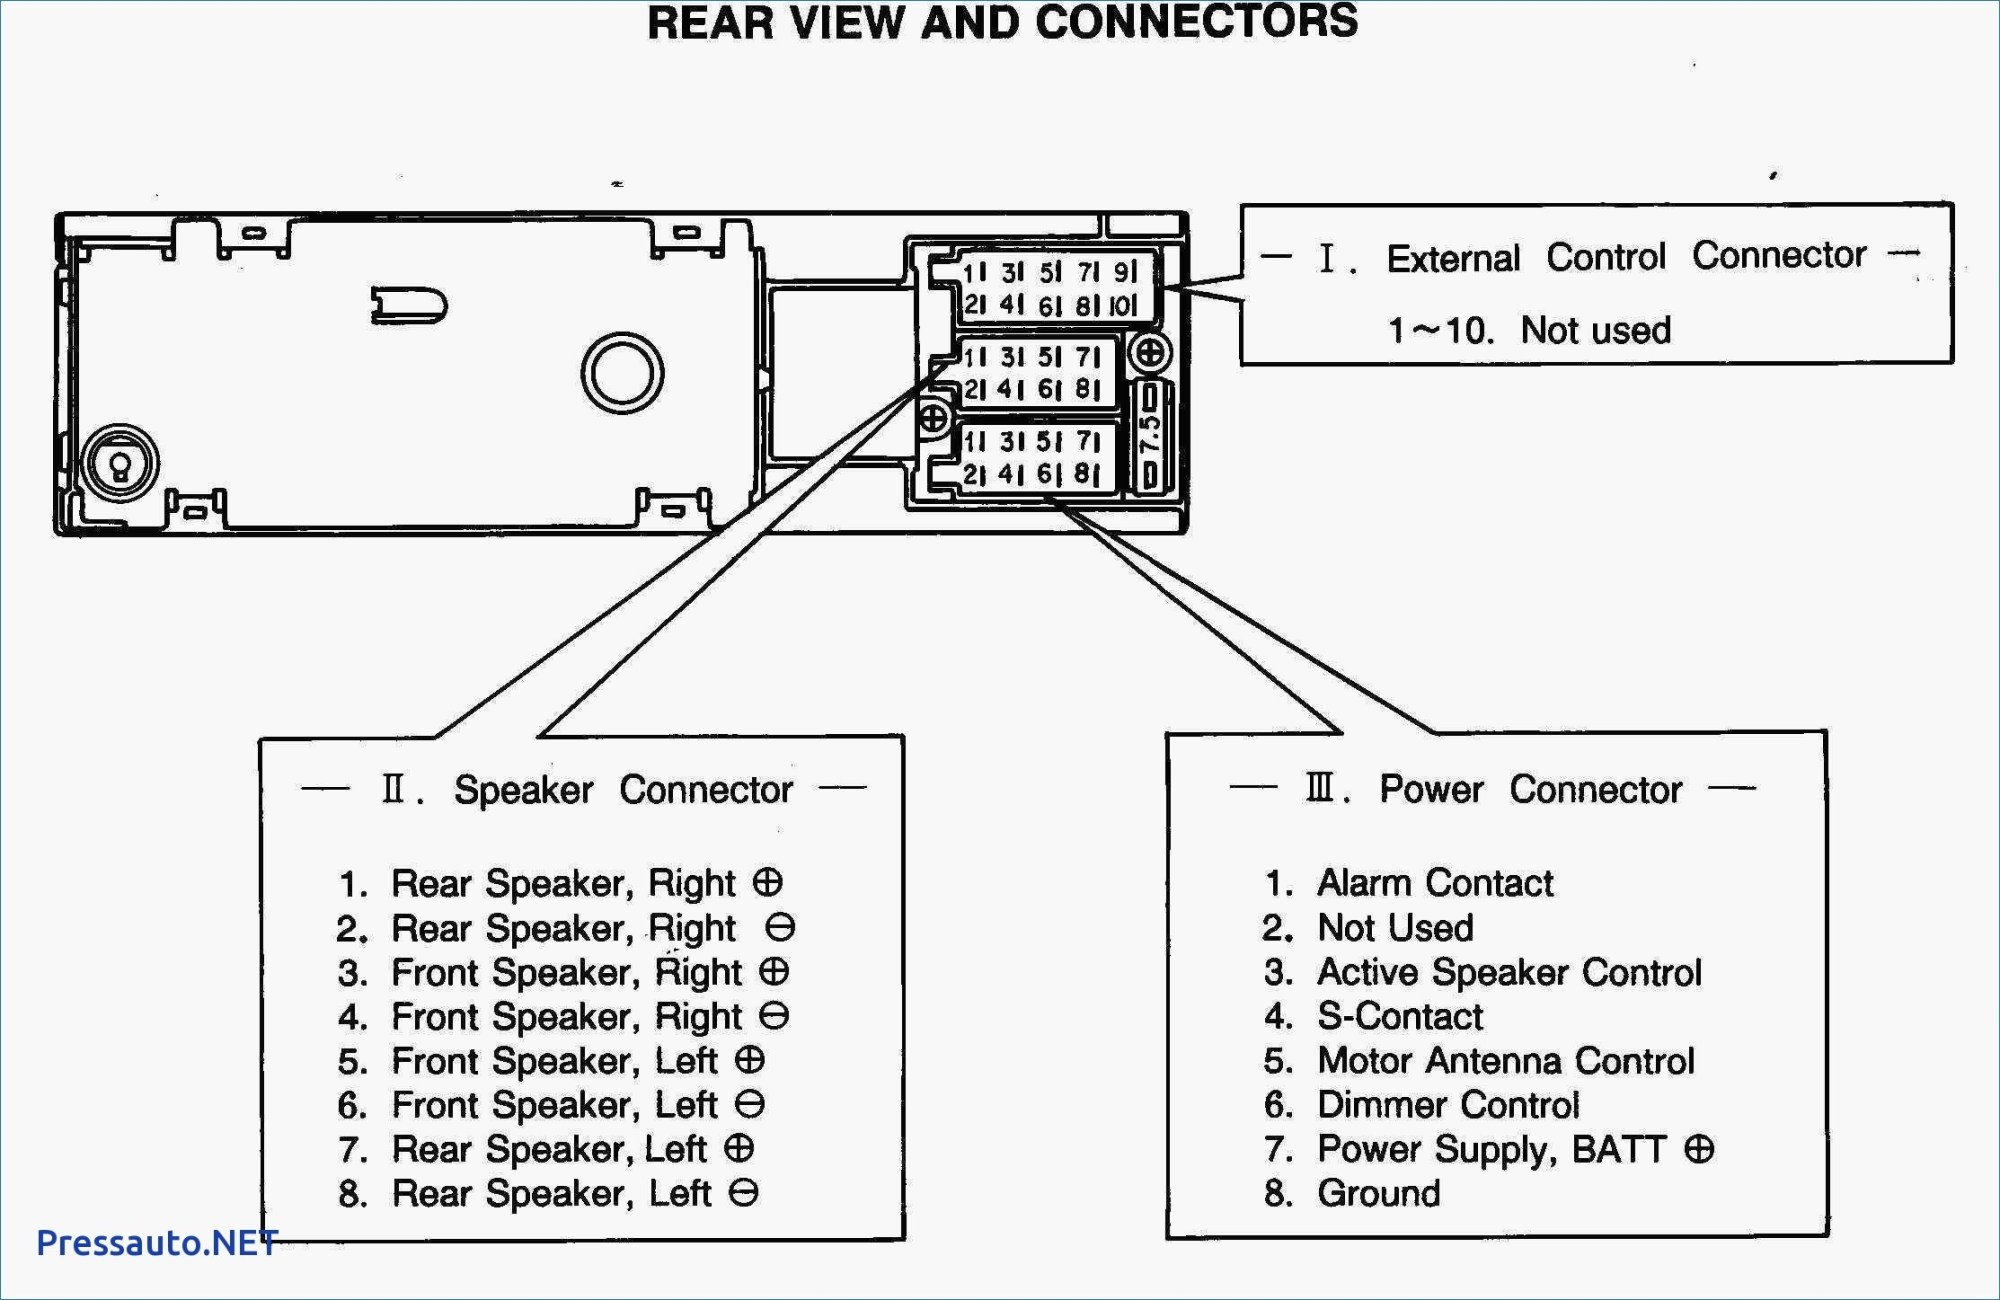 hight resolution of delco stereo wiring diagram delco car stereo wiring diagram best car audio wiring diagrams lovely